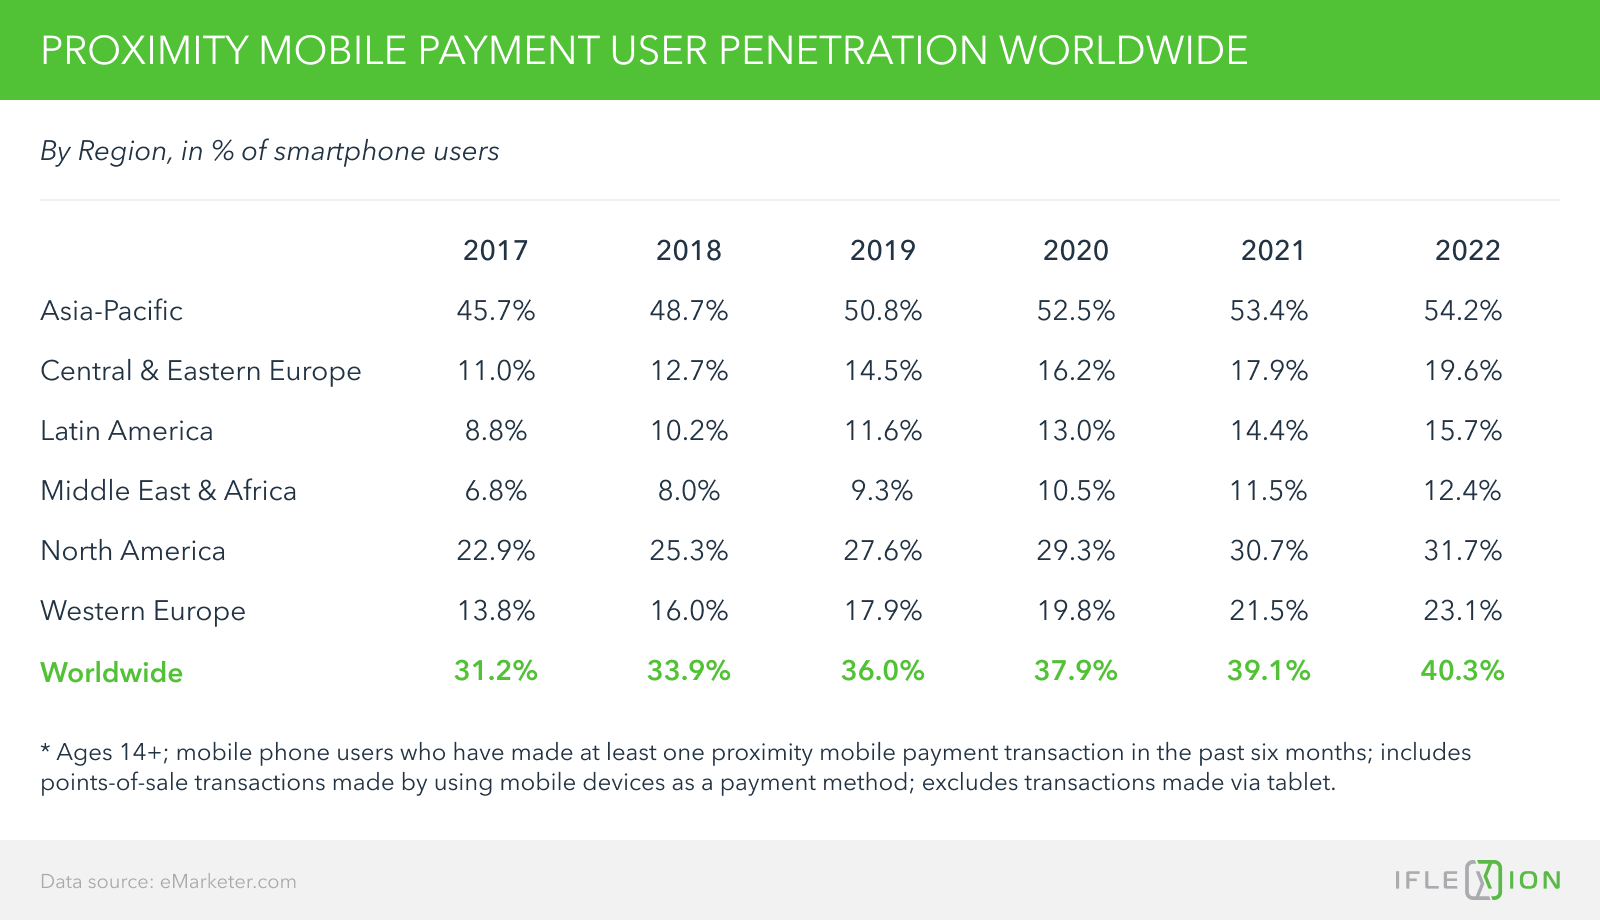 Proximity mobile payment user penetration